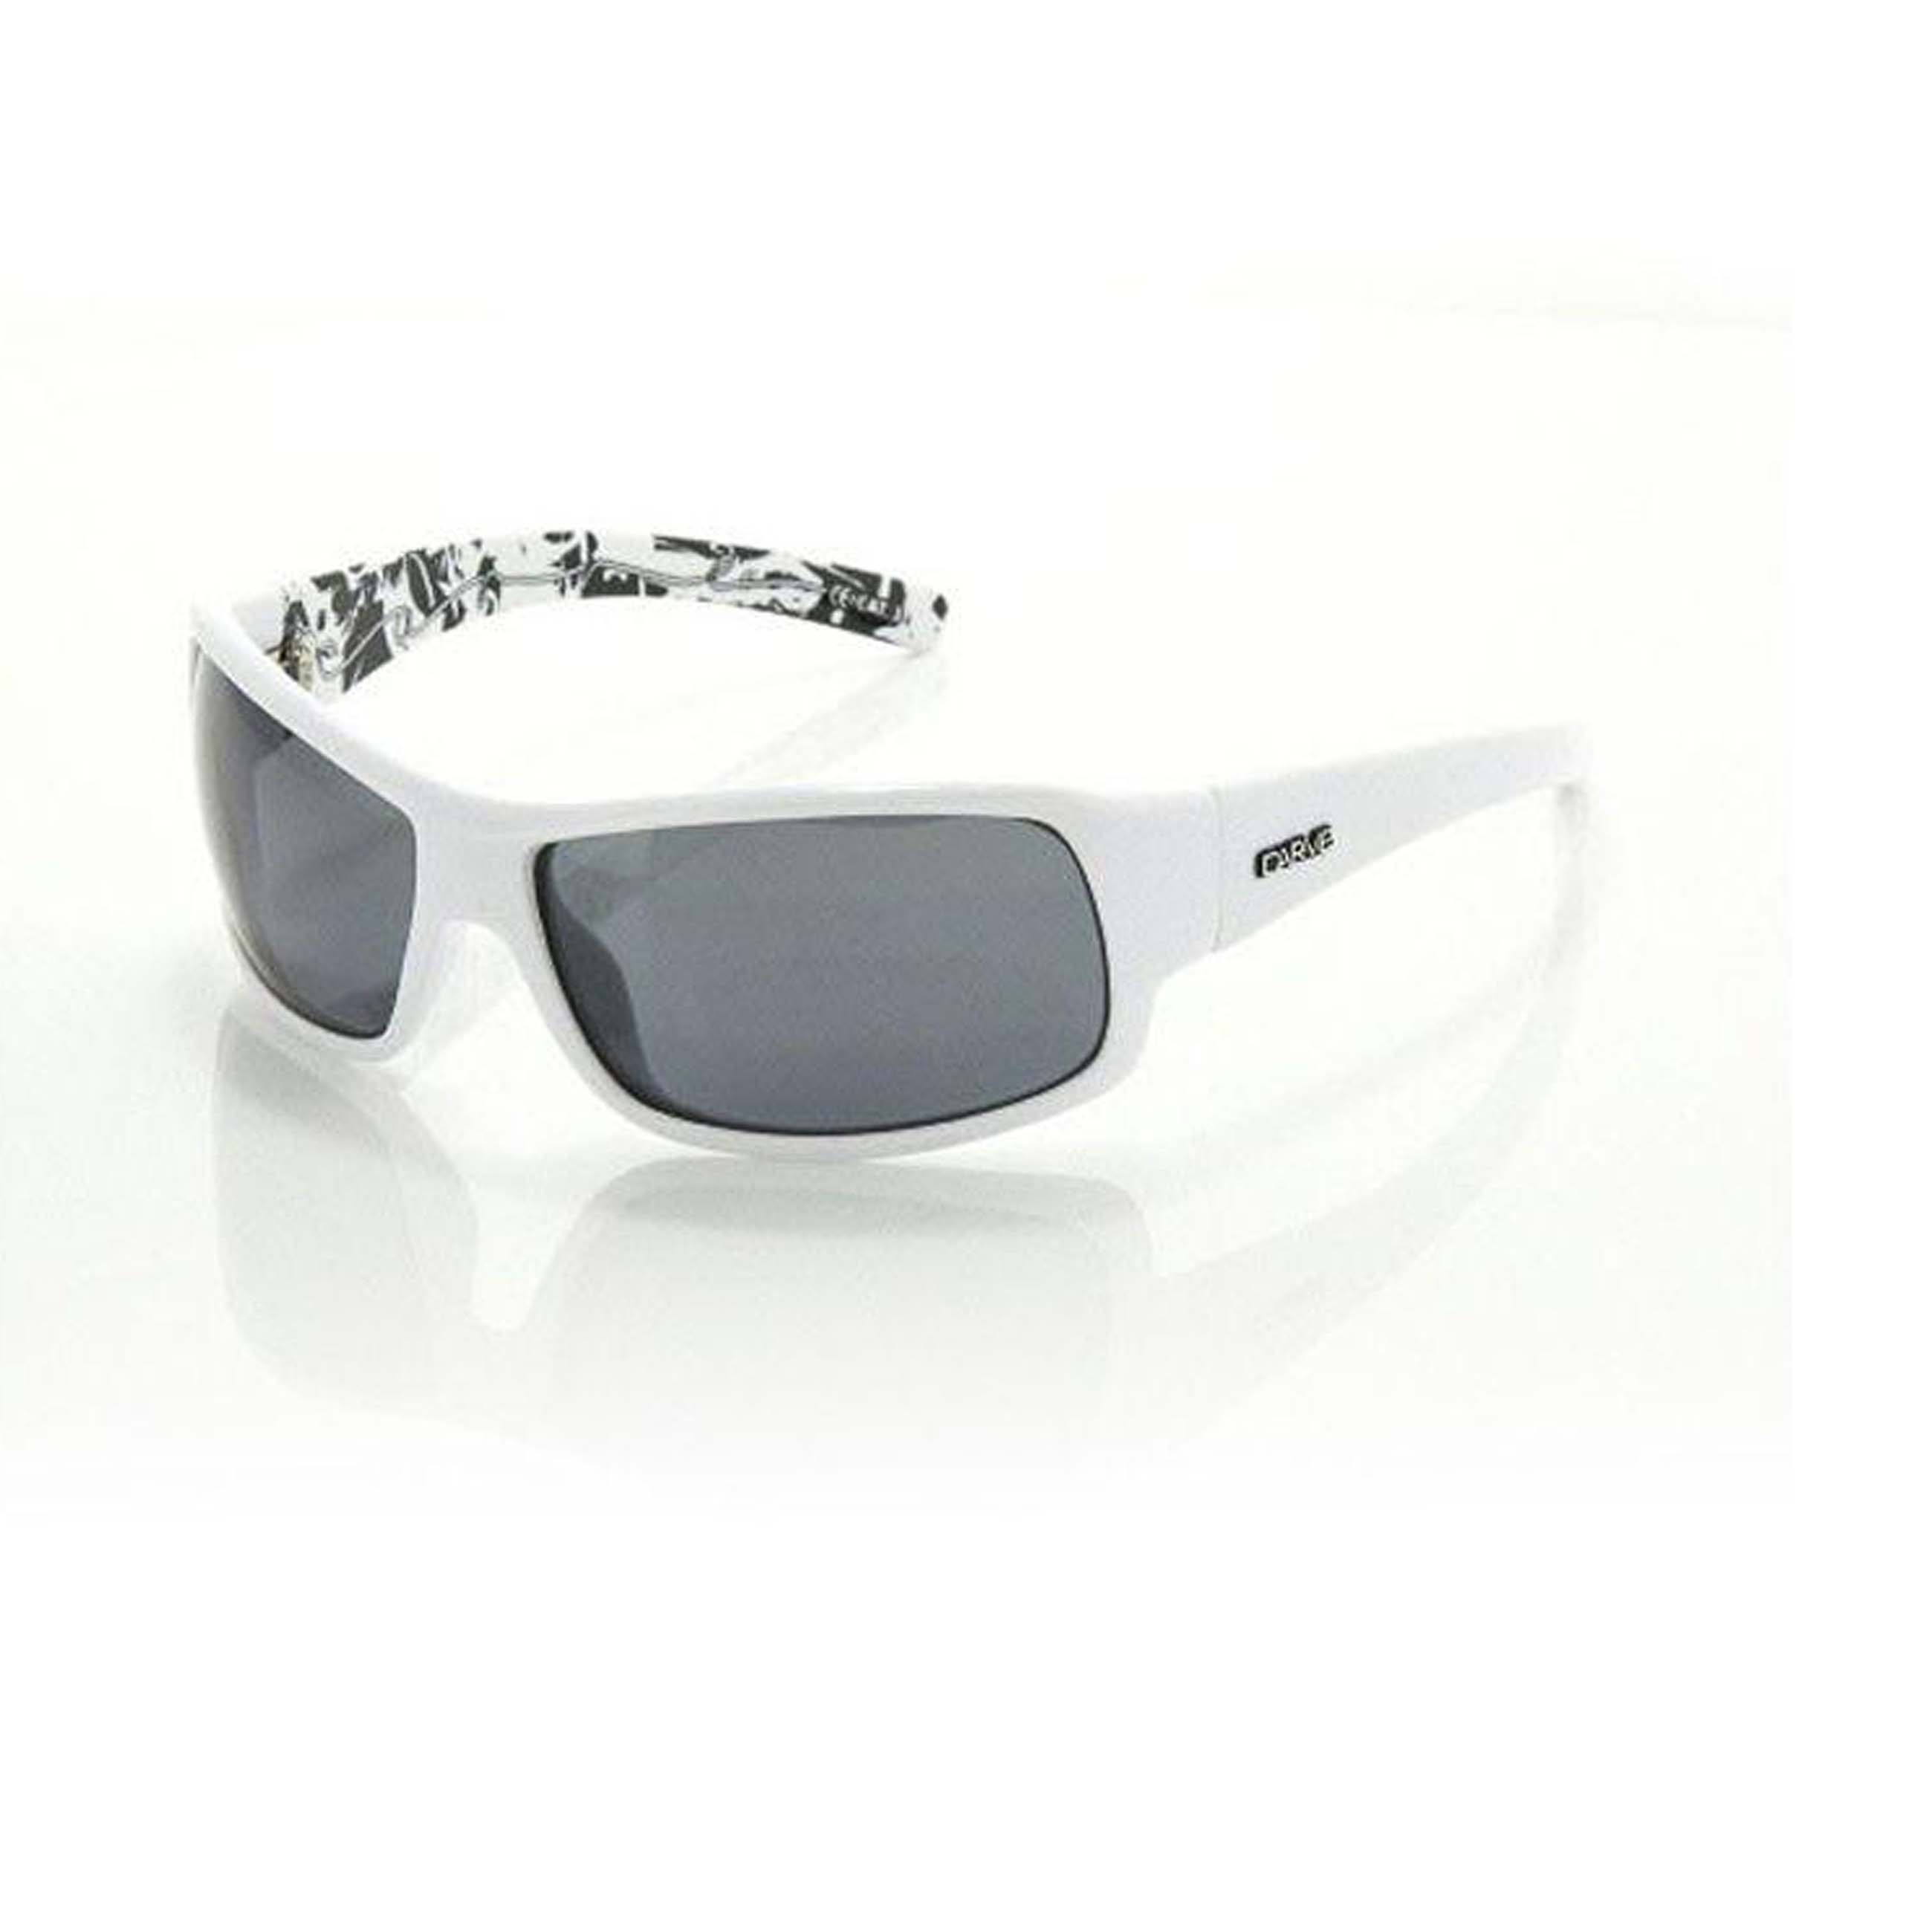 7df418df5c402 Details about Carve Sonny Black Polarized White Signature Lens Sunglasses